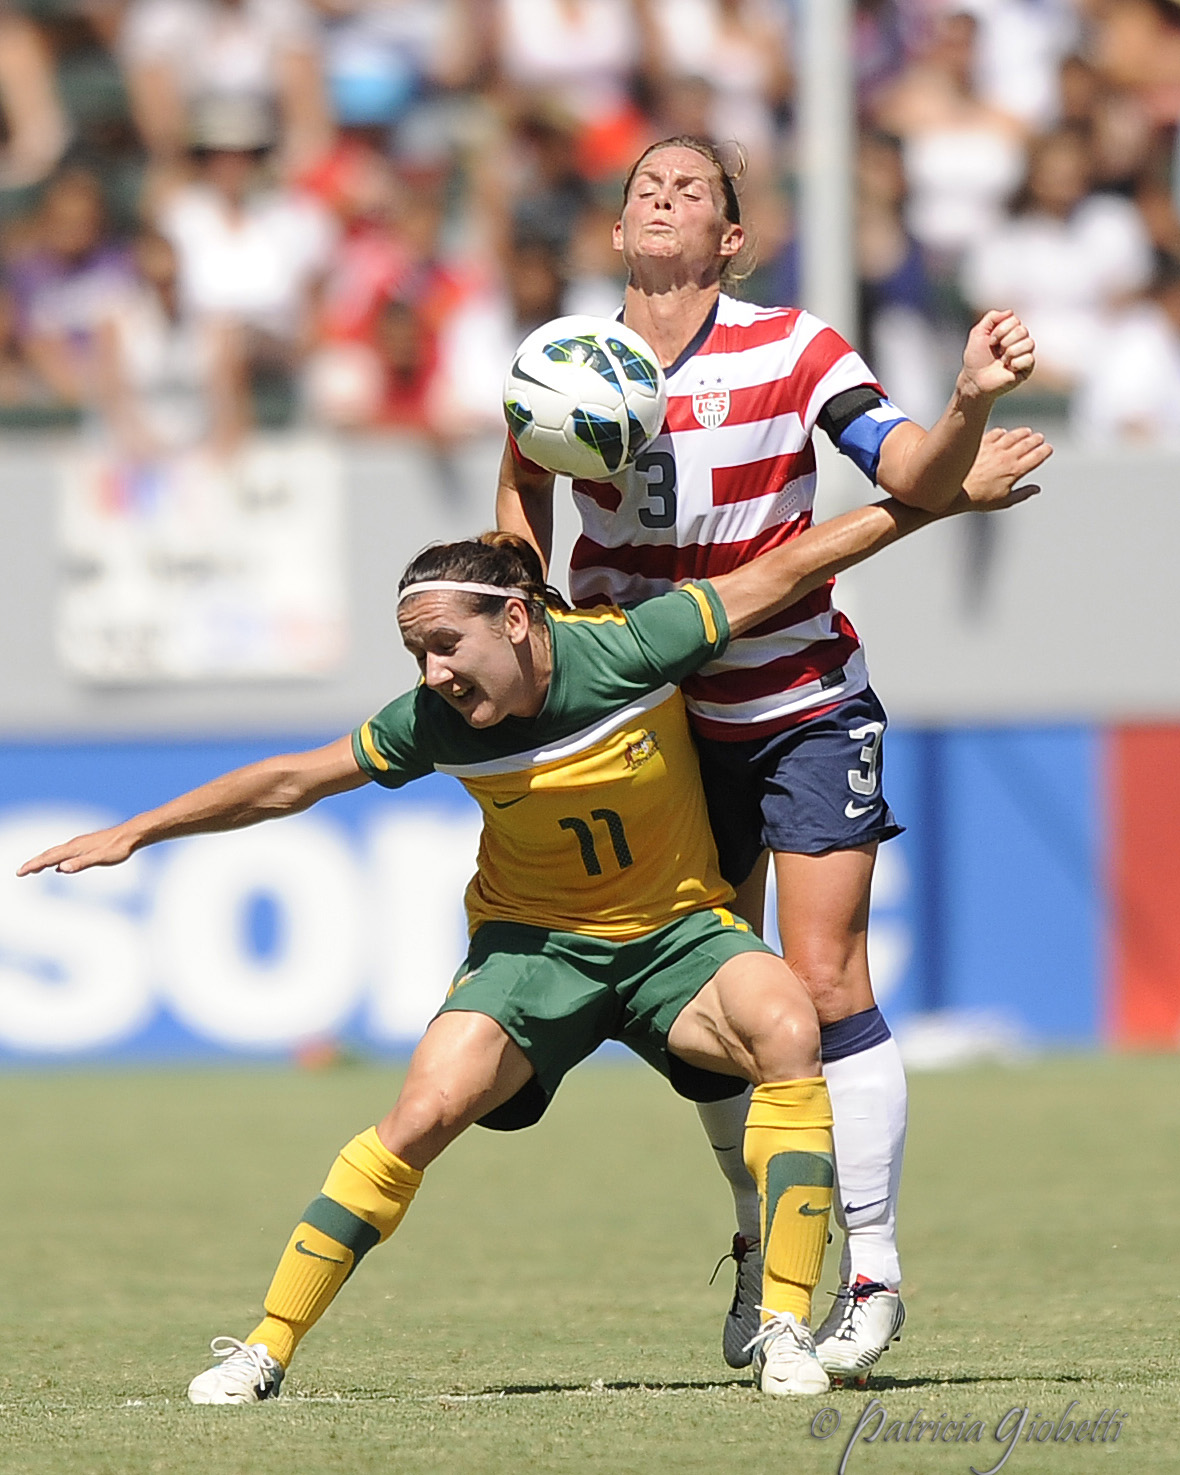 Lisa DeVanna (left) of Australia battles U.S. captain Christie Rampone for the ball. (Copyright Patricia Giobetti | http://www.printroom.com/pro/psgiobetti)